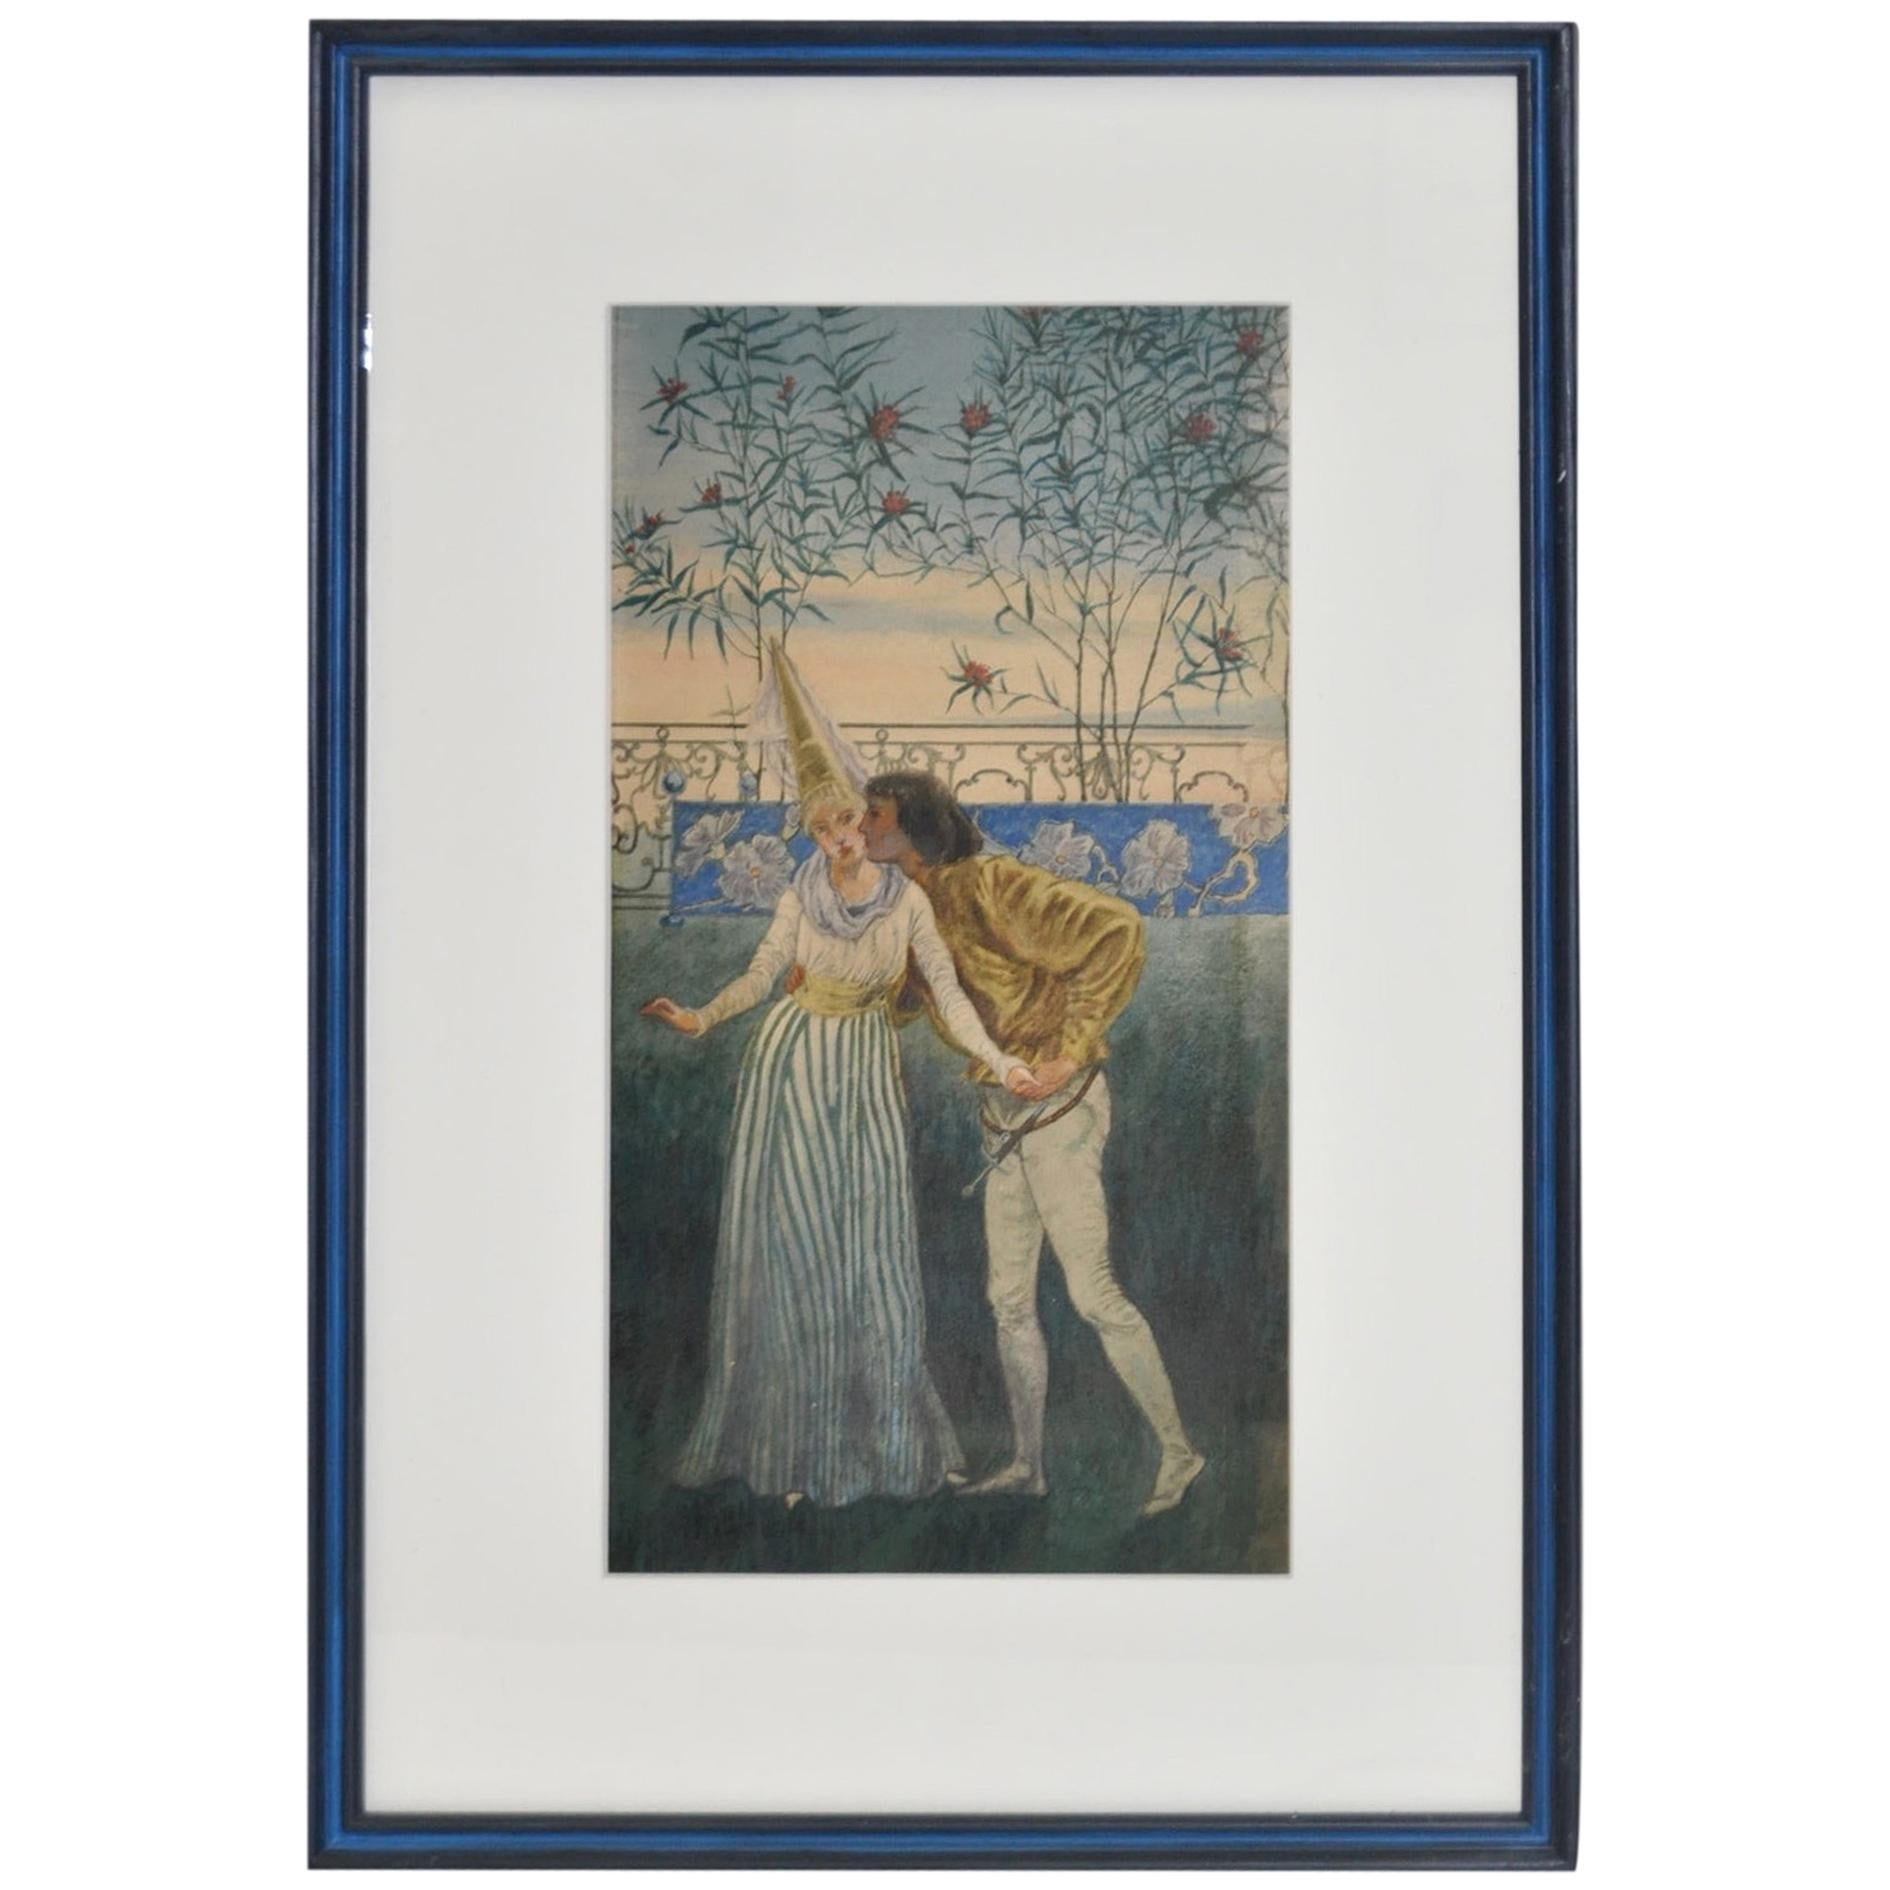 Romeo and Juliette Watercolor by Liam Watson, circa 1910